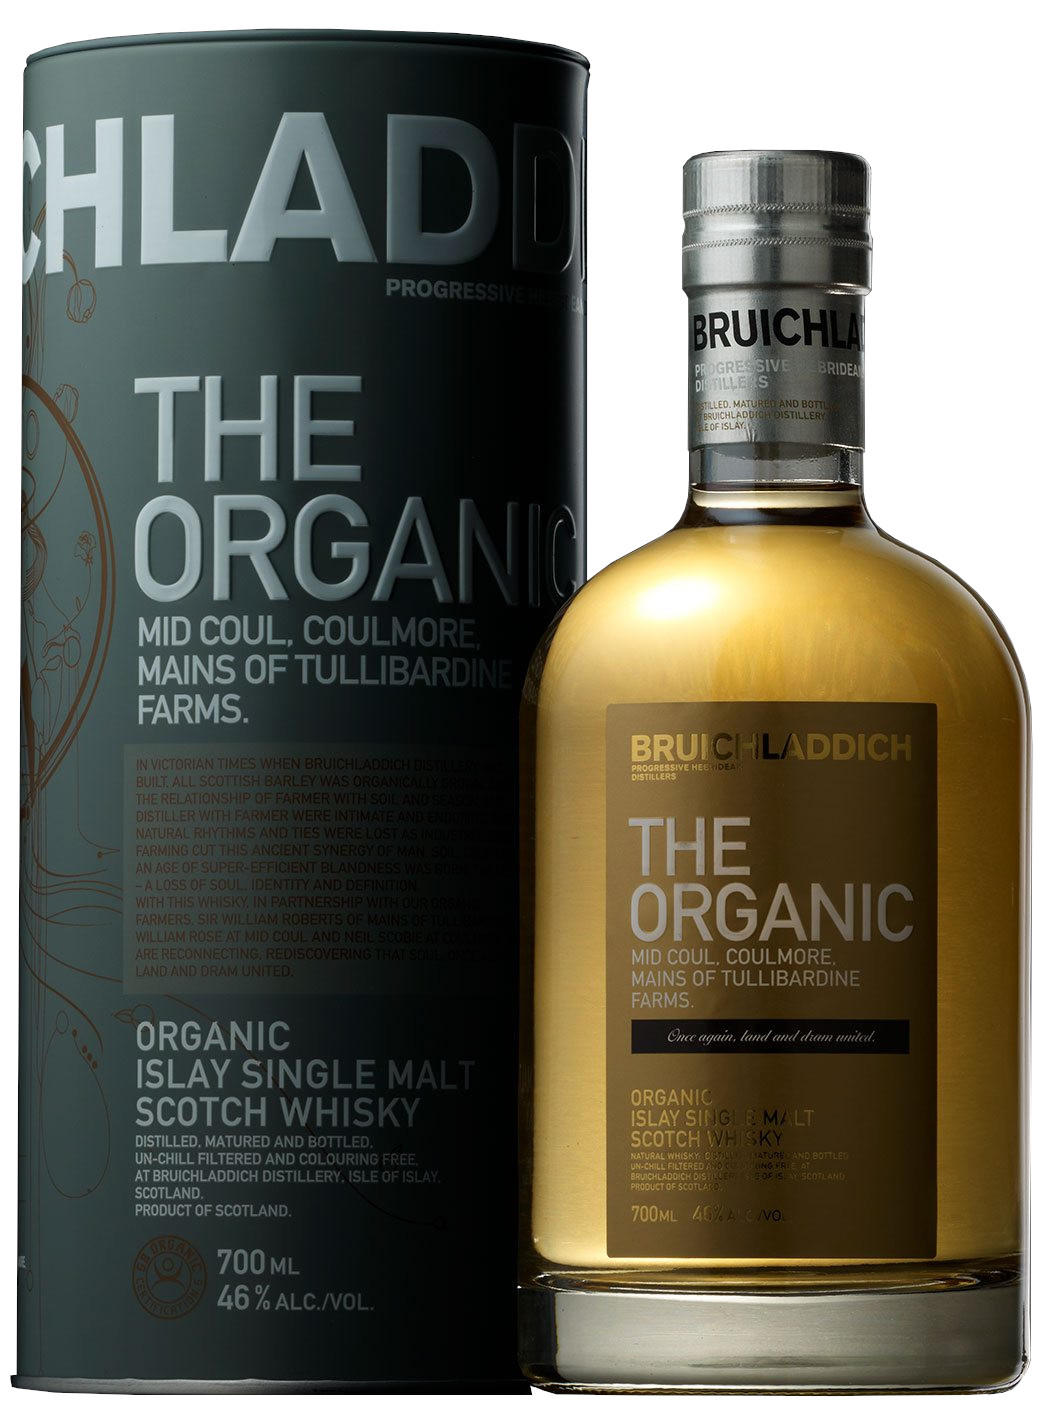 Bruichladic, The organic multivintage